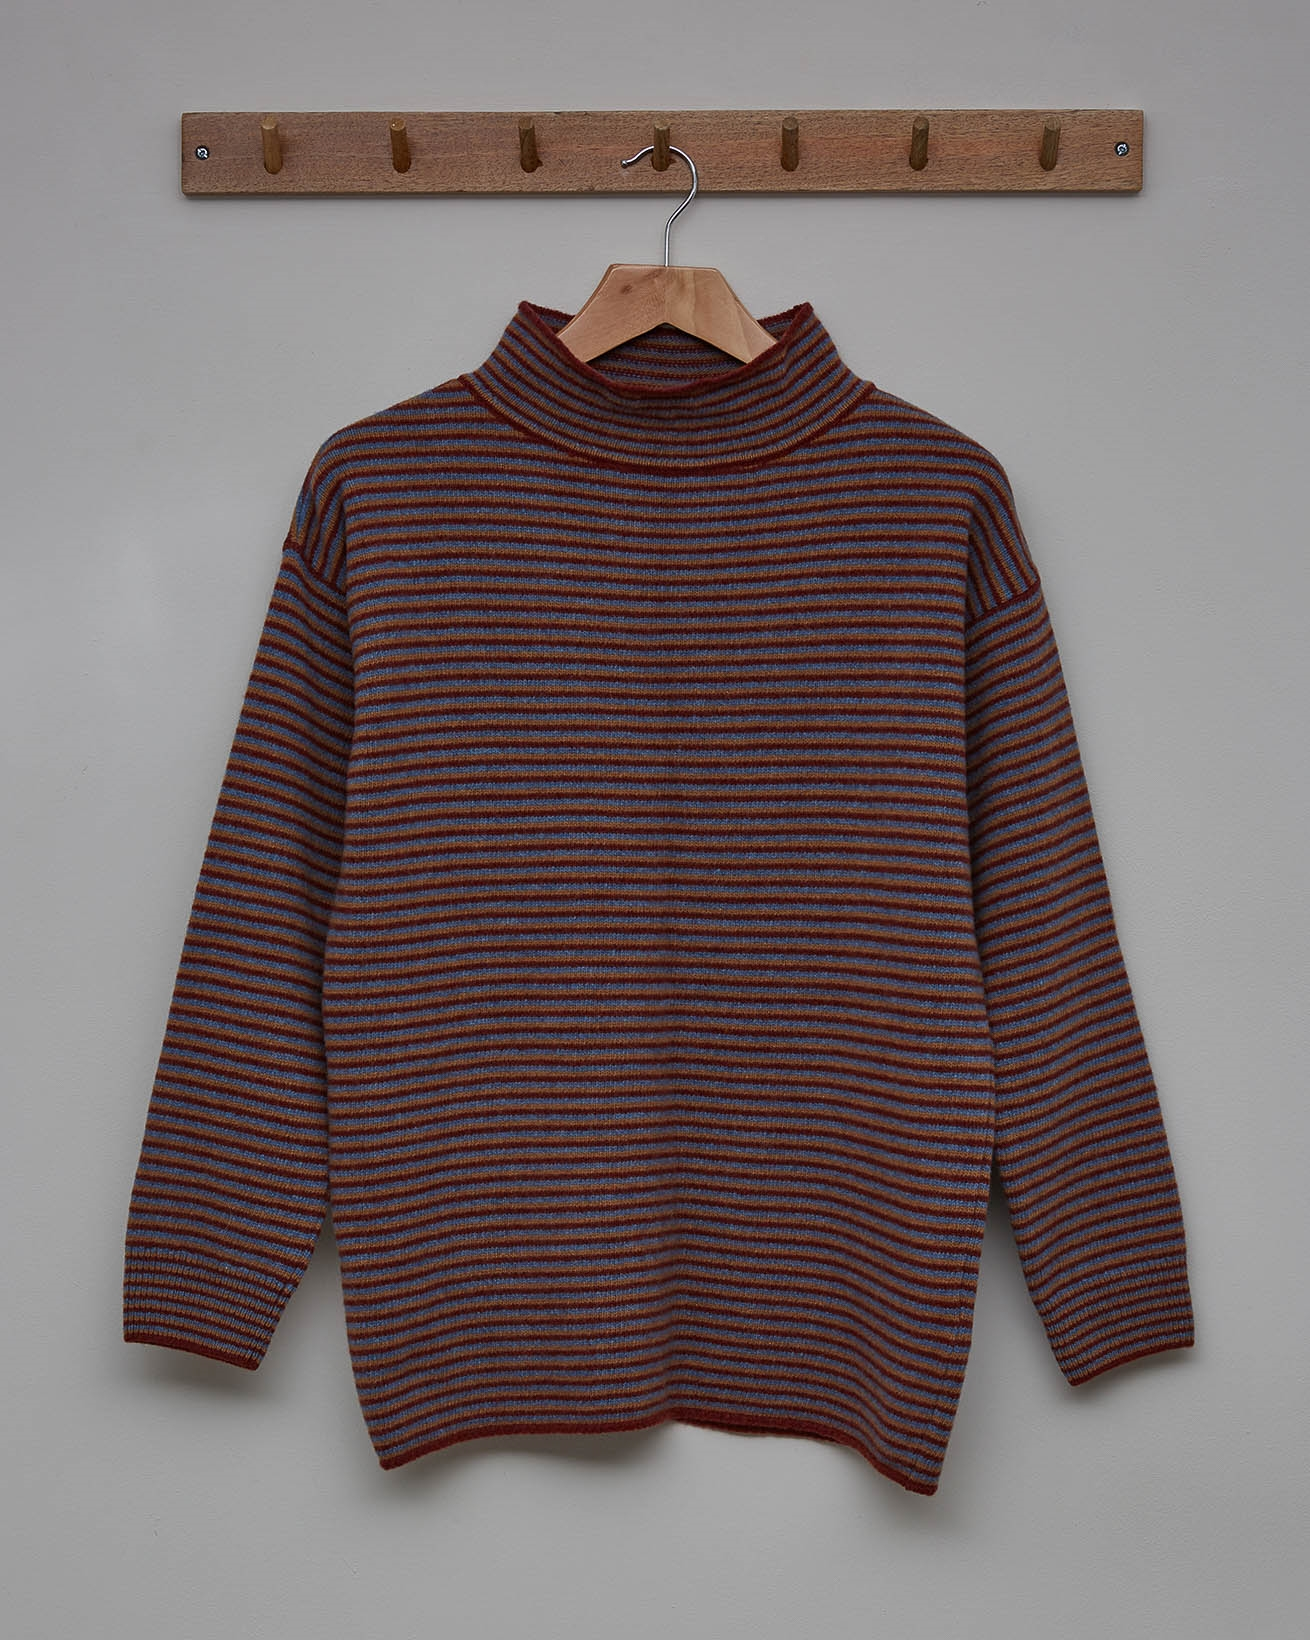 Felted Funnel Neck - Size Small - Rust, Autumn Brown, Vintage Blue Stripe - 2363